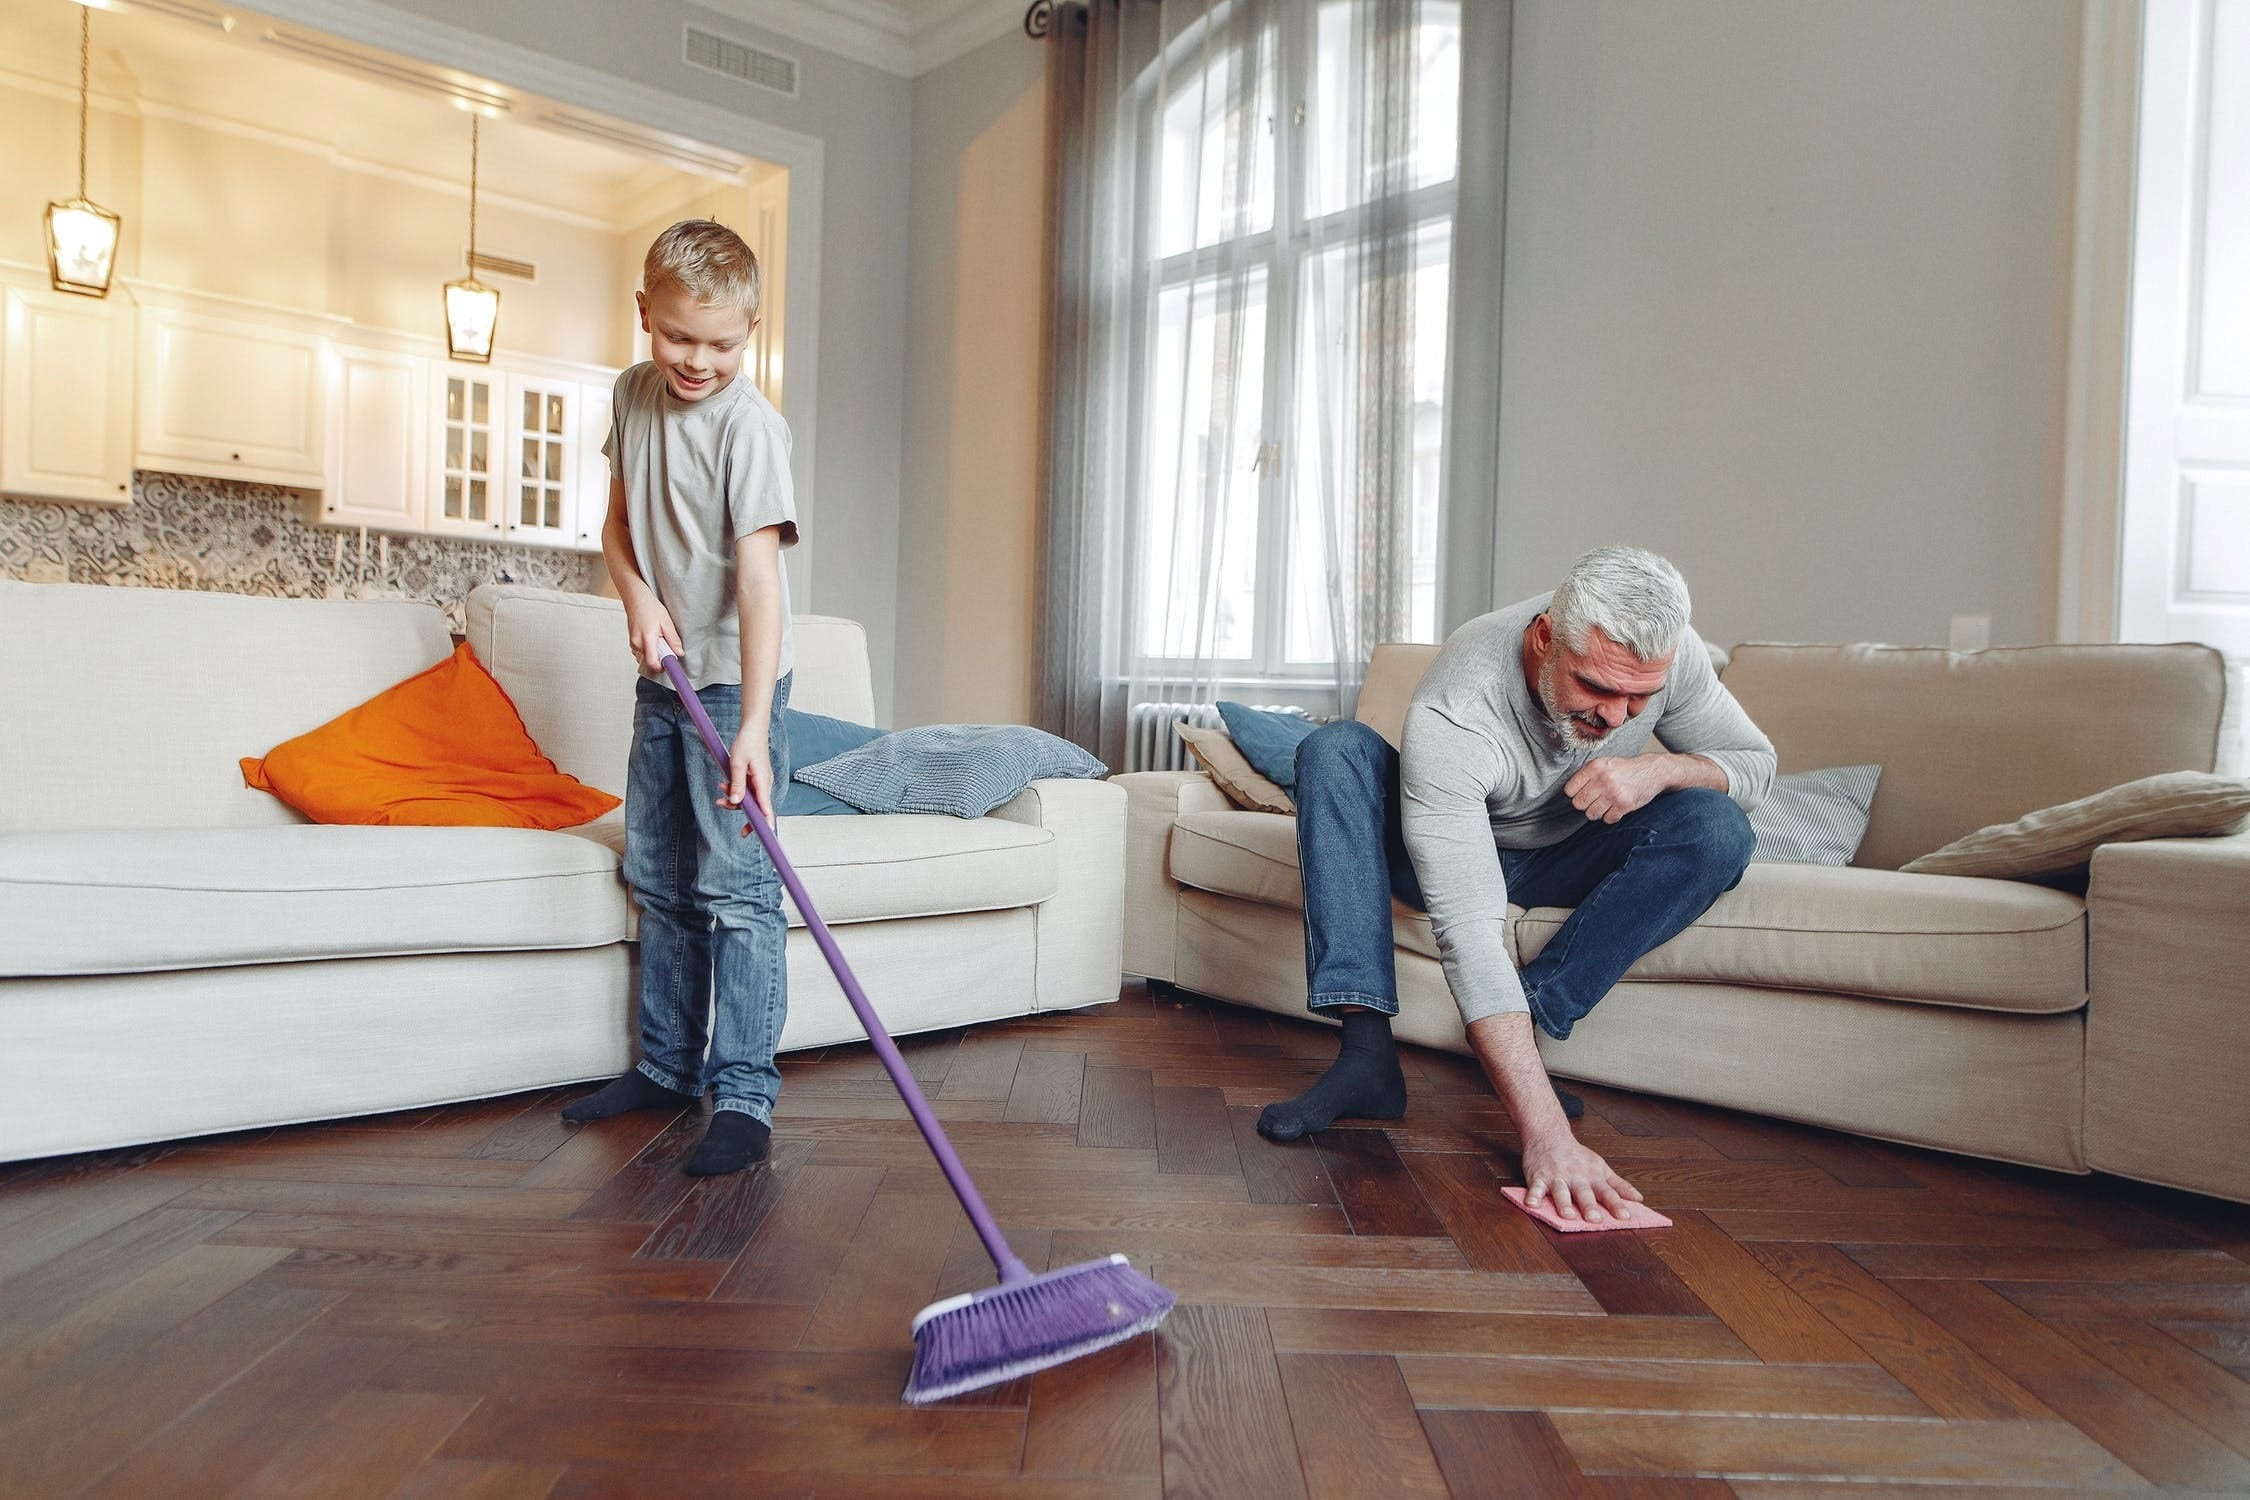 Father and son cleaning home daycare